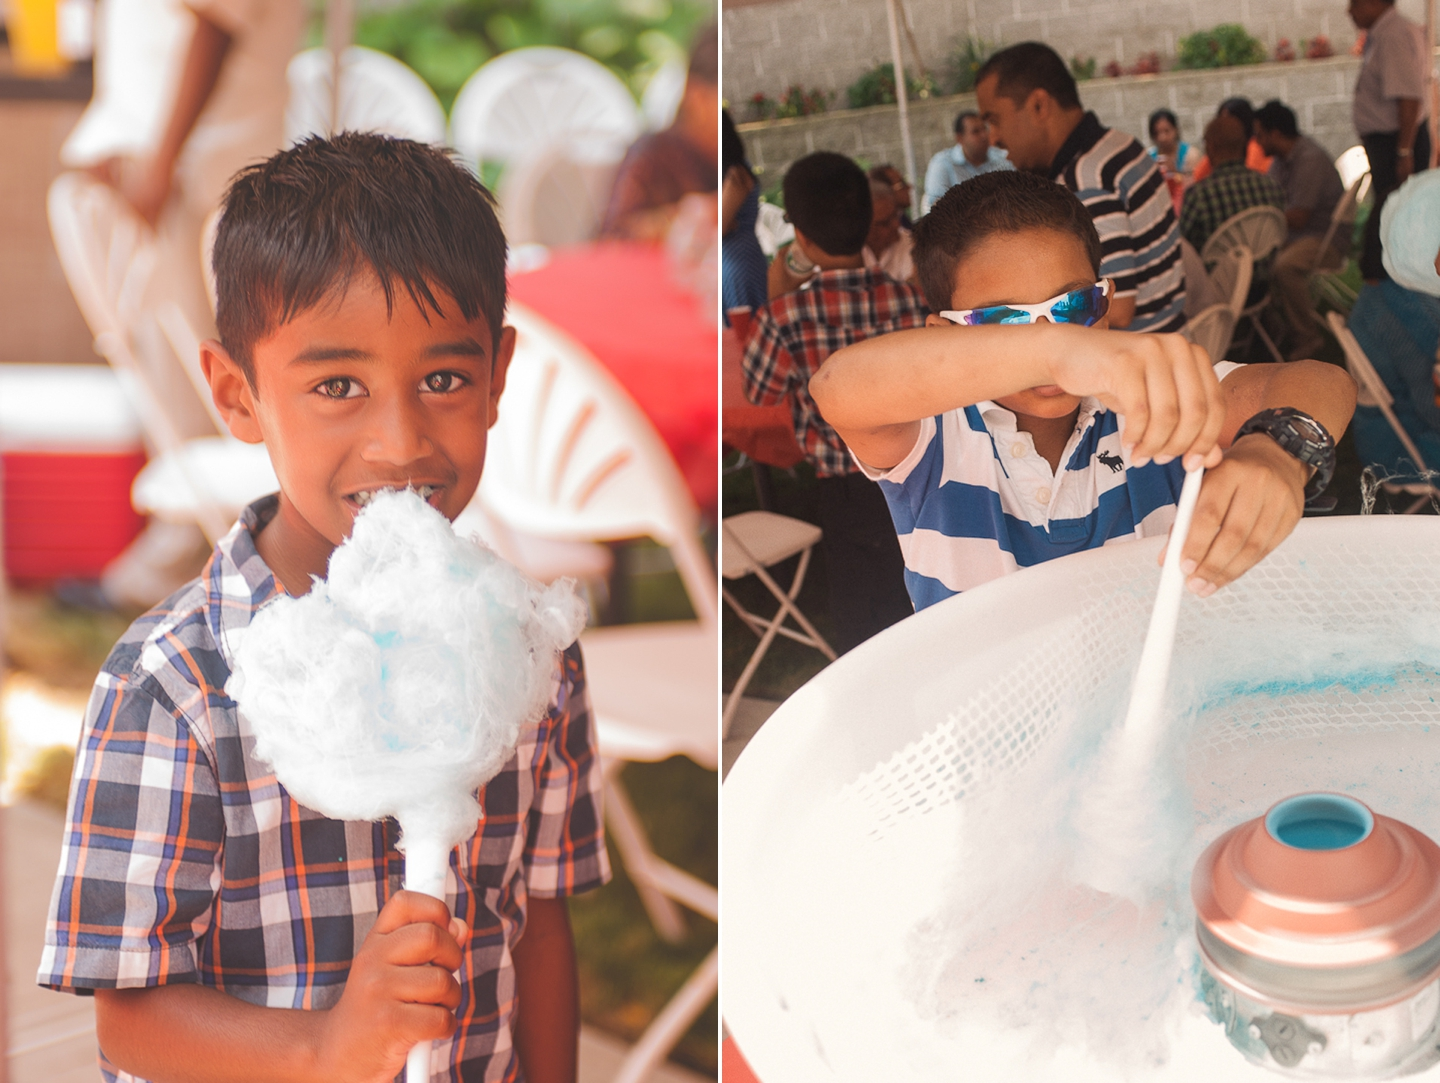 mithun-first-birthday-party-event-photography-long-island-ny-first-birthday-Collage-8.jpg